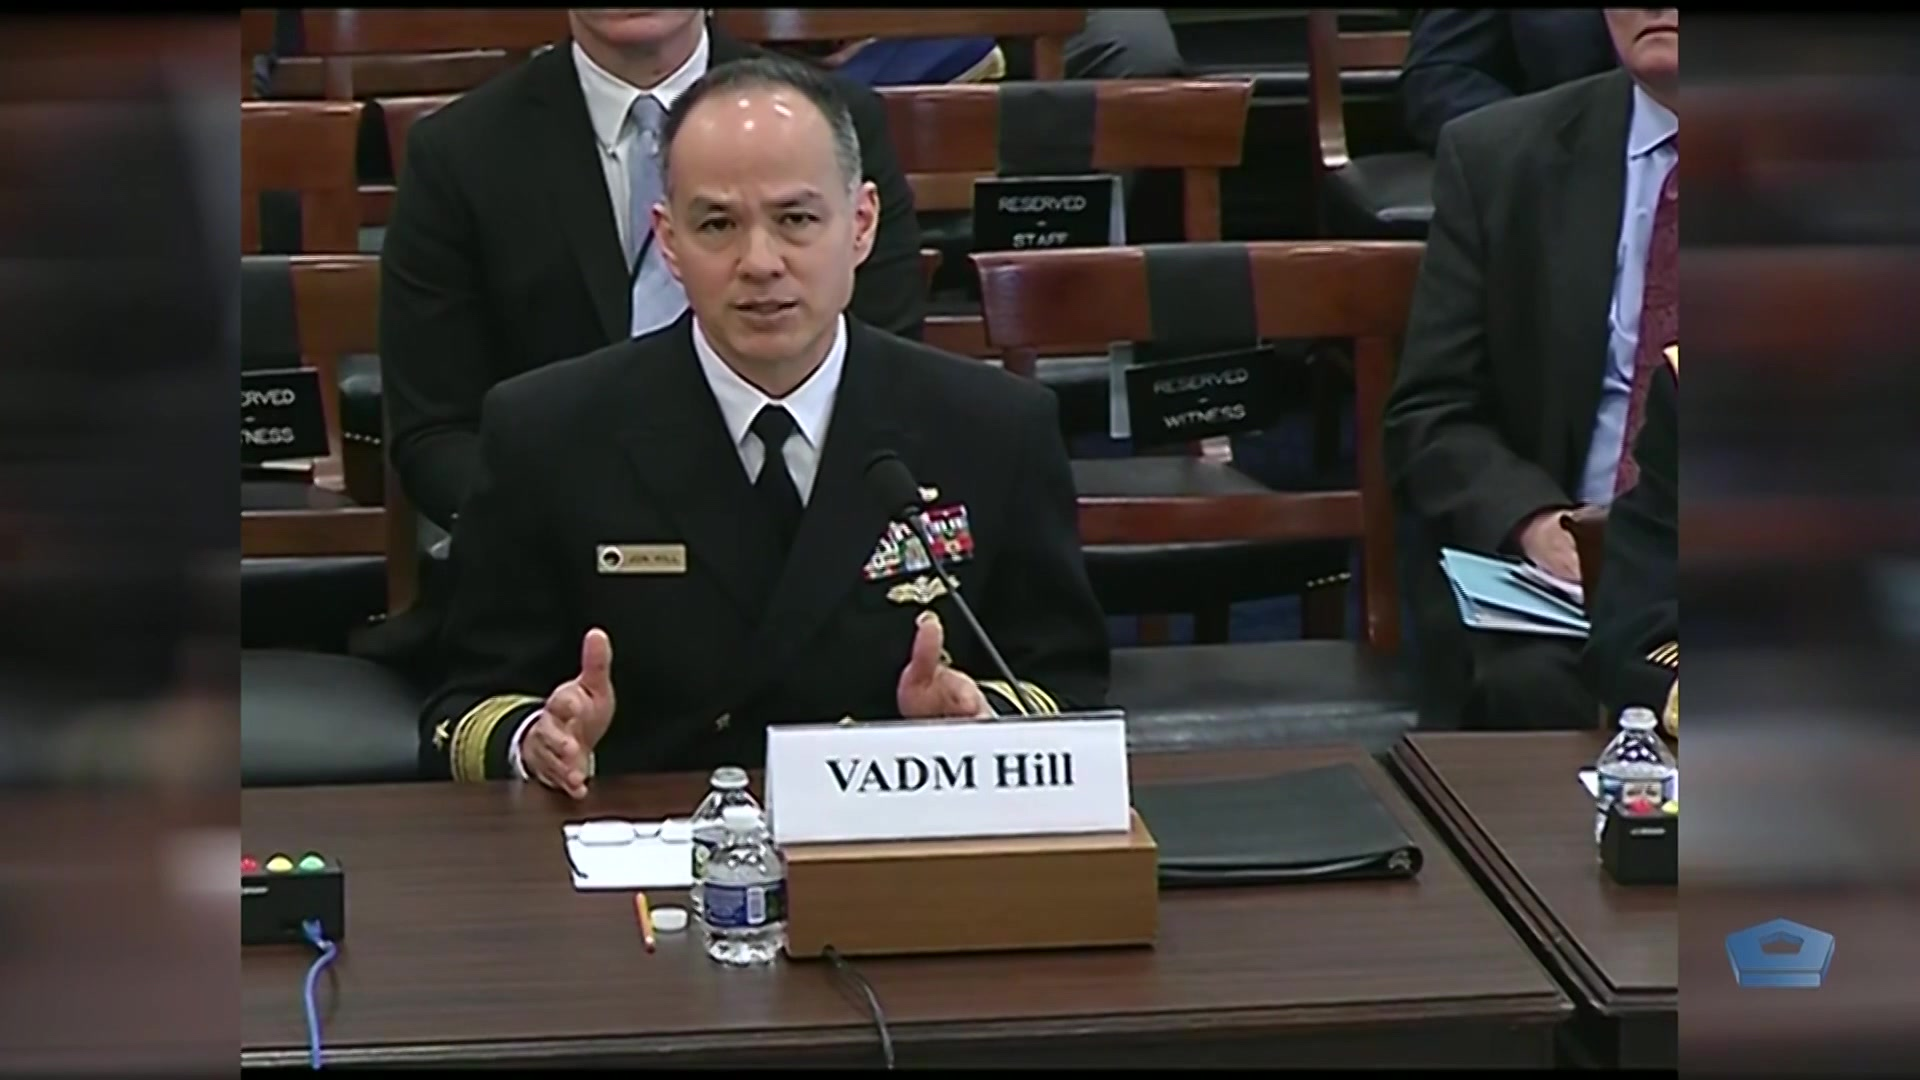 A Navy vice admiral speaks at a table.